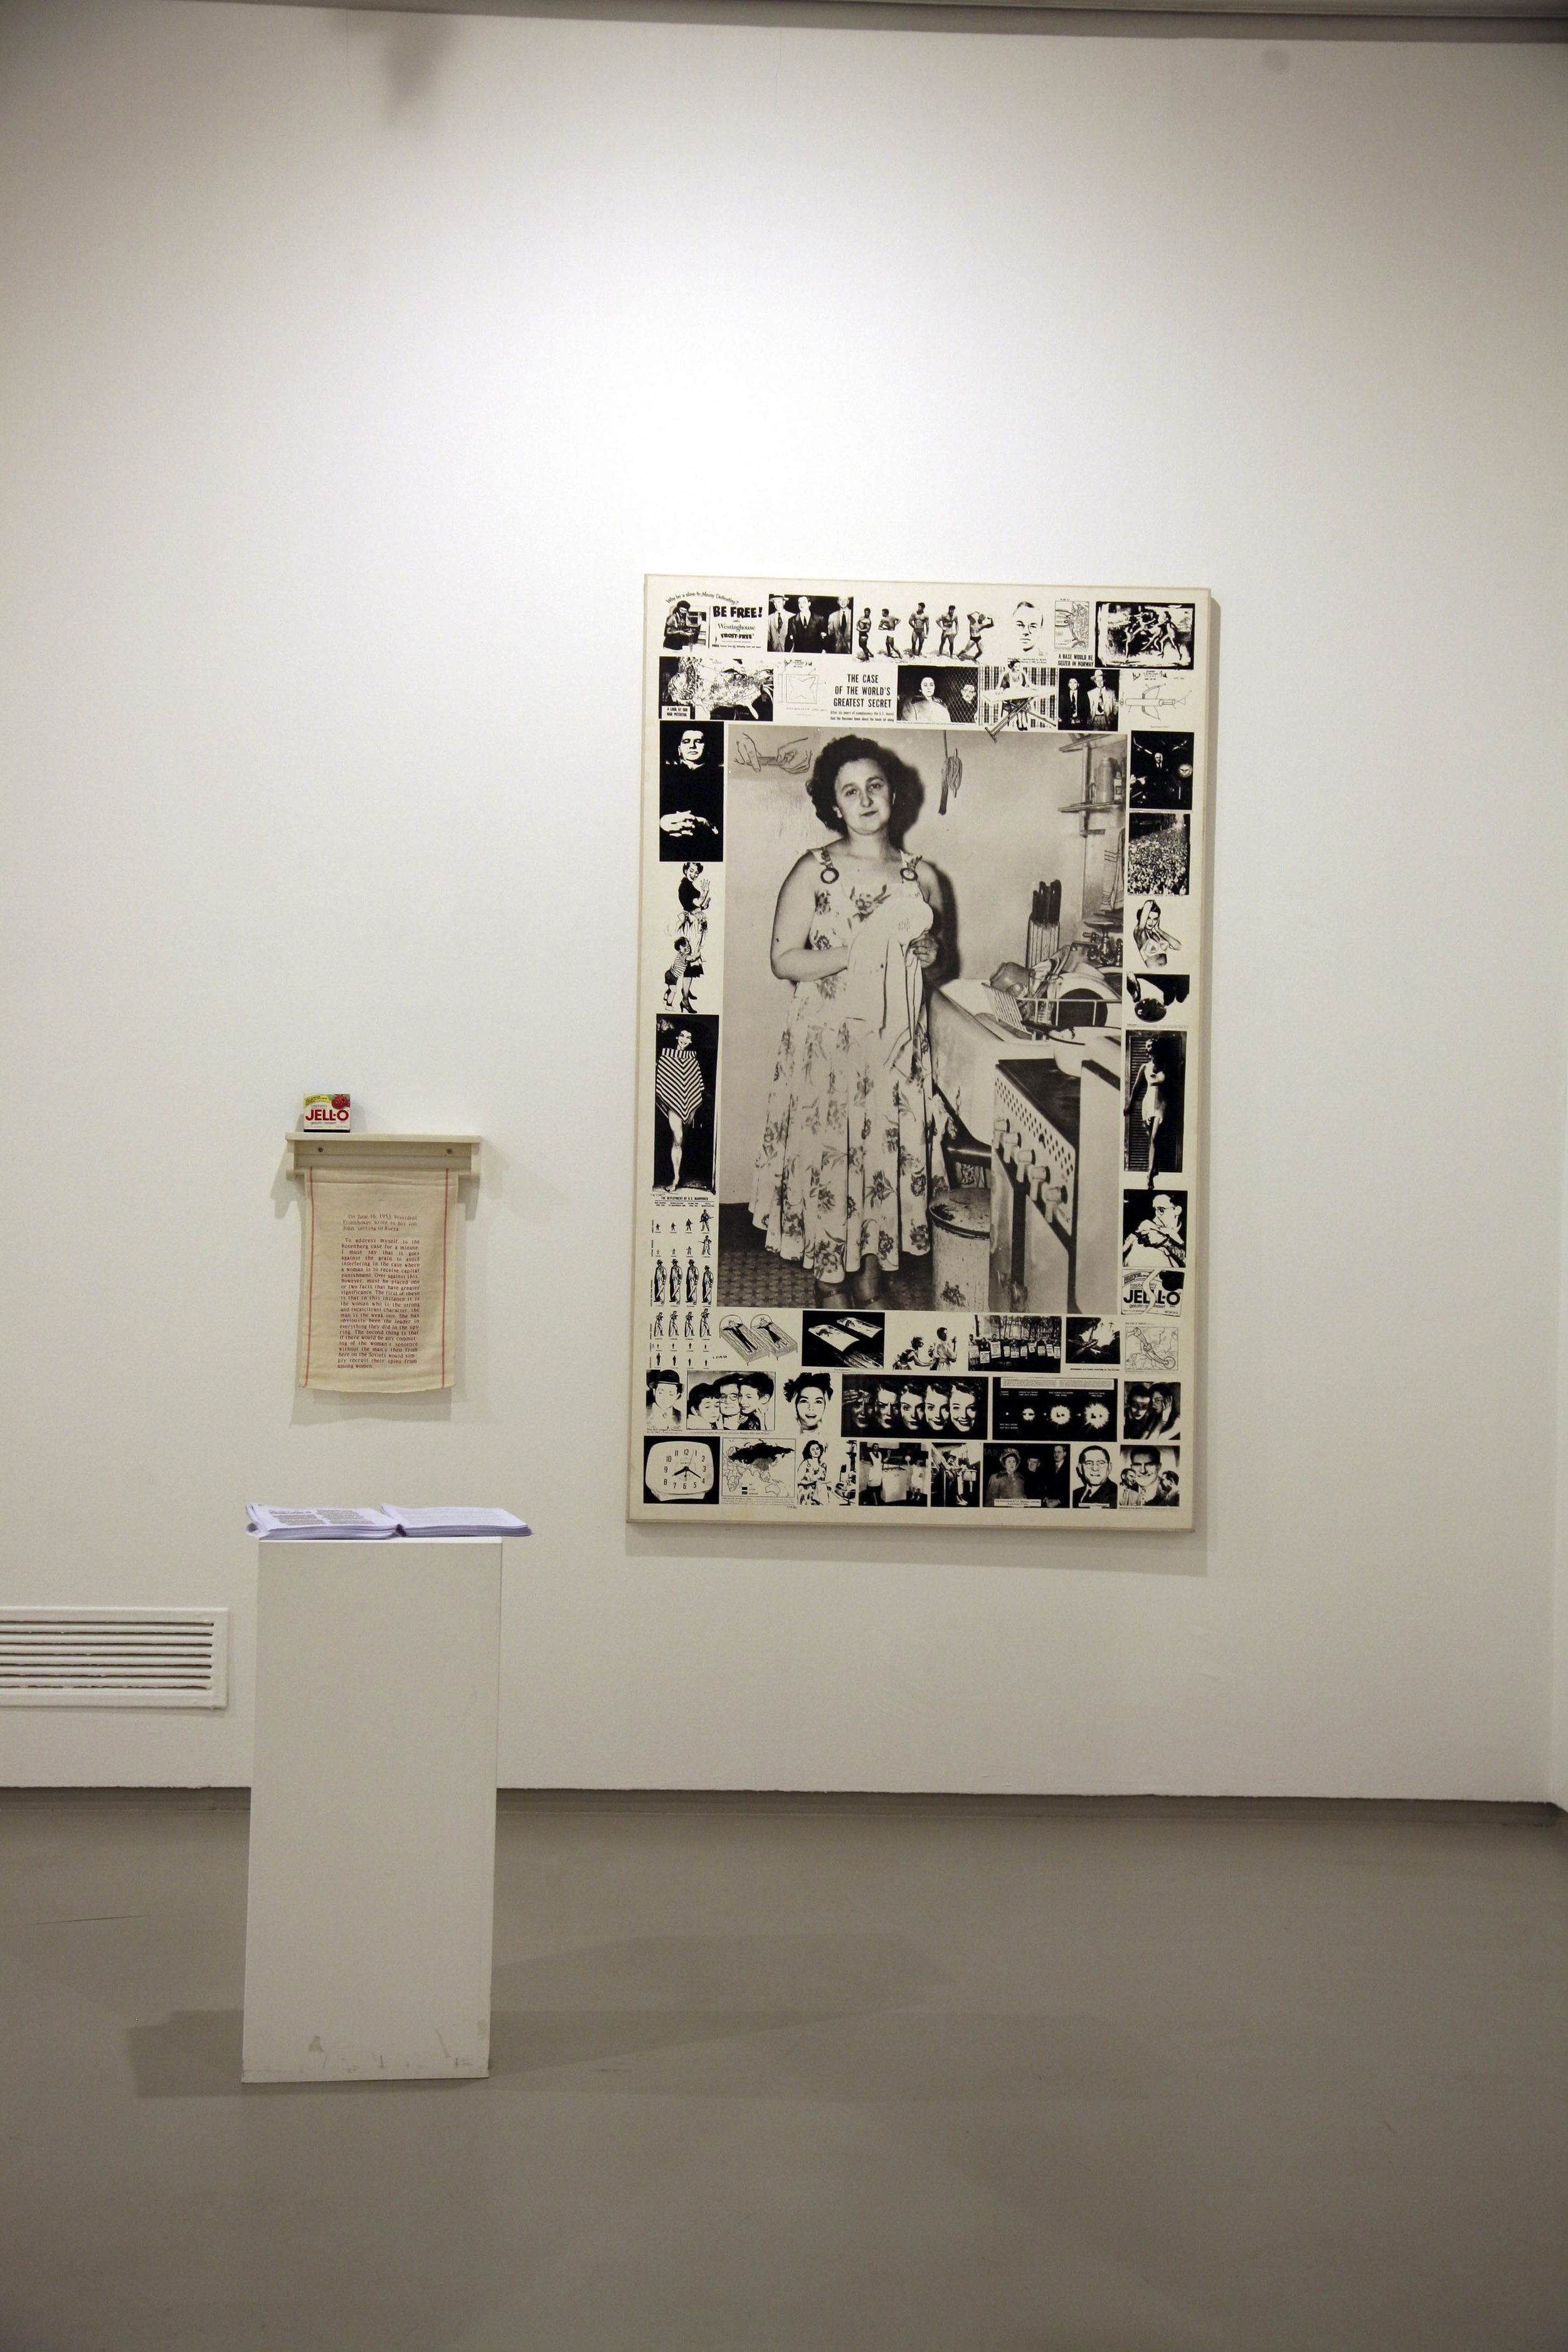 Martha Rosler, Unknown Secrets (The Secret of the Rosenbergs), 1988, installation with screenprinted black-and-white photographs on canvas, wooden towel rack with stenciled towel and Jell-O box, and printed text handout. Artwork © Martha Rosler